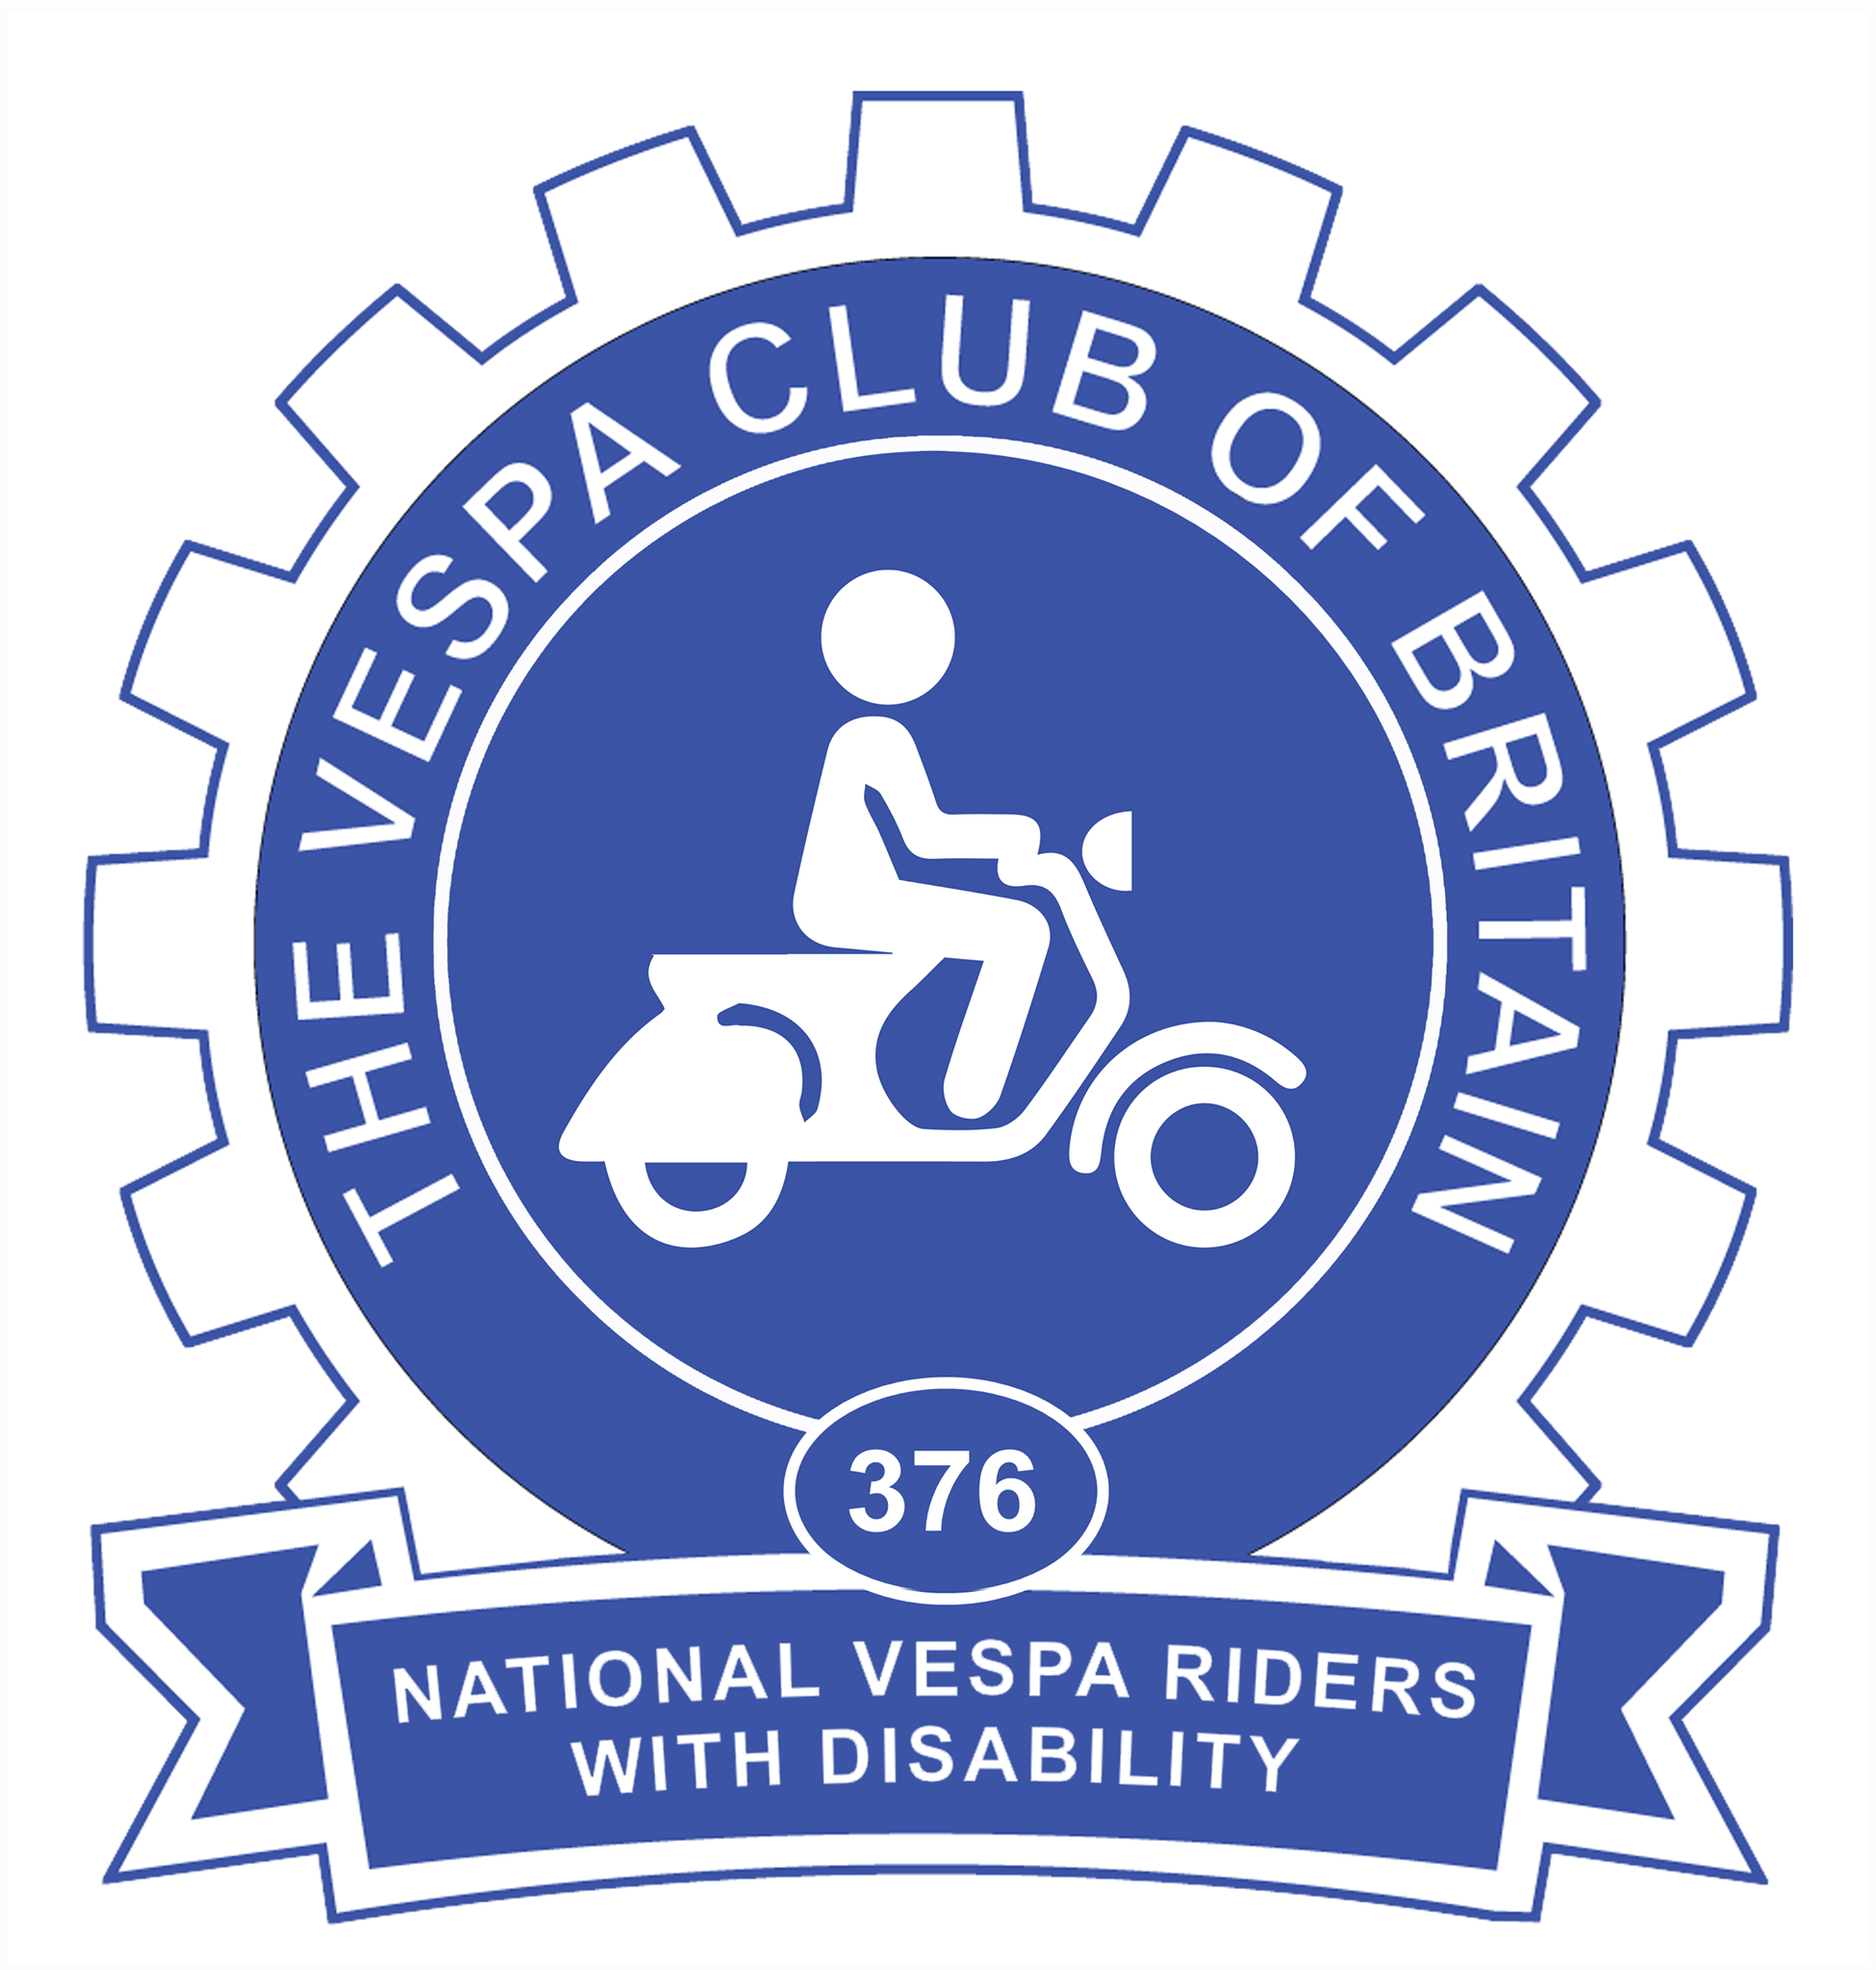 Vespa Club of Britain